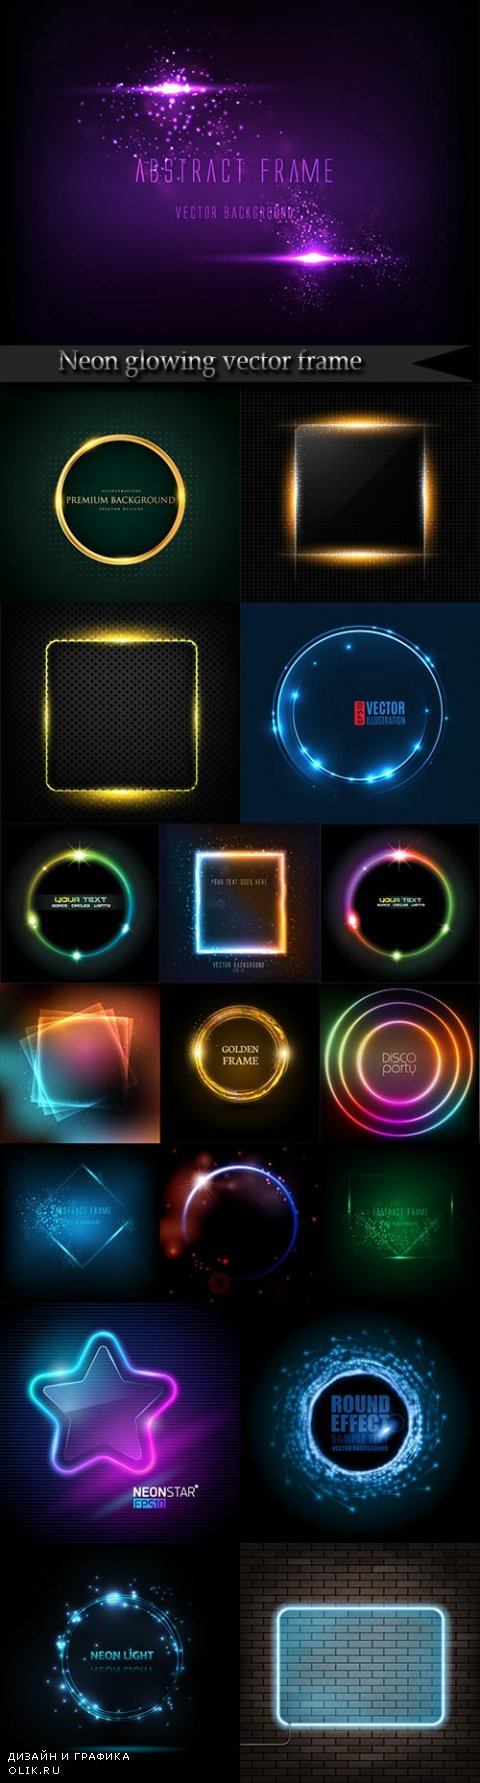 Neon glowing vector frame